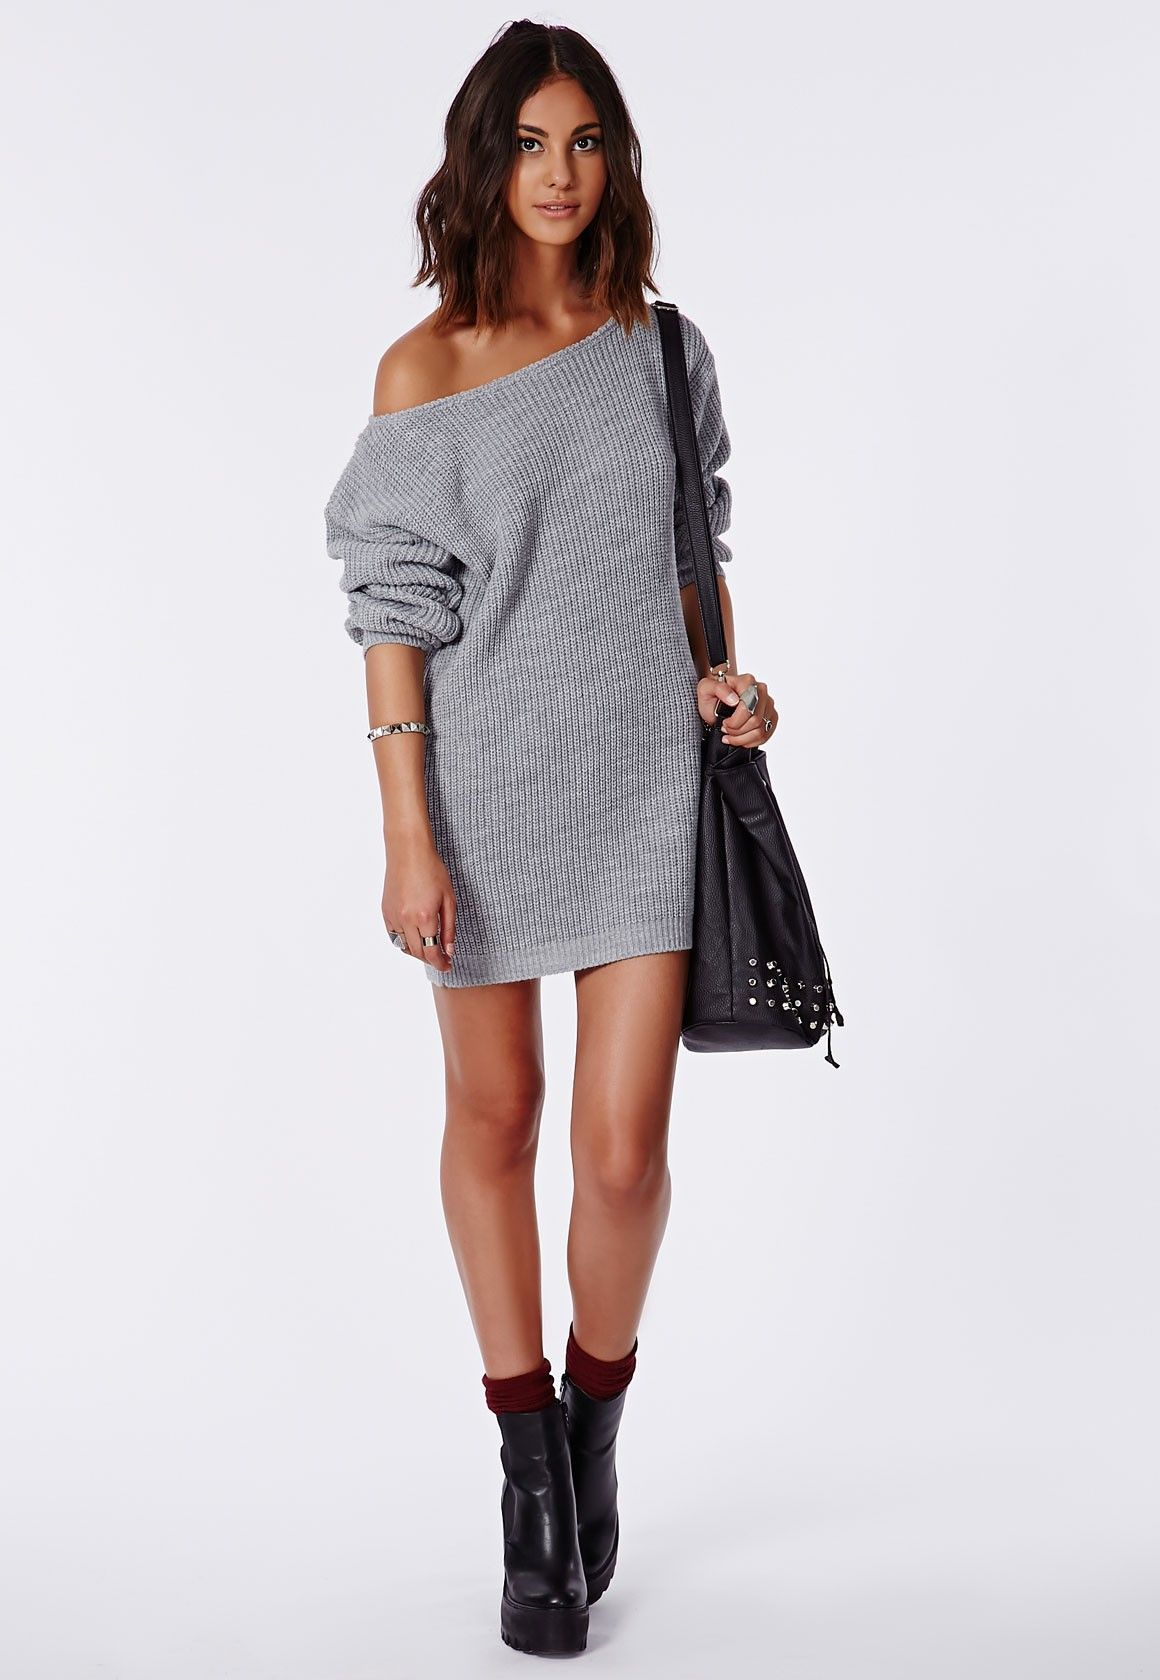 We're already getting excited for updating our knitwear collection ...